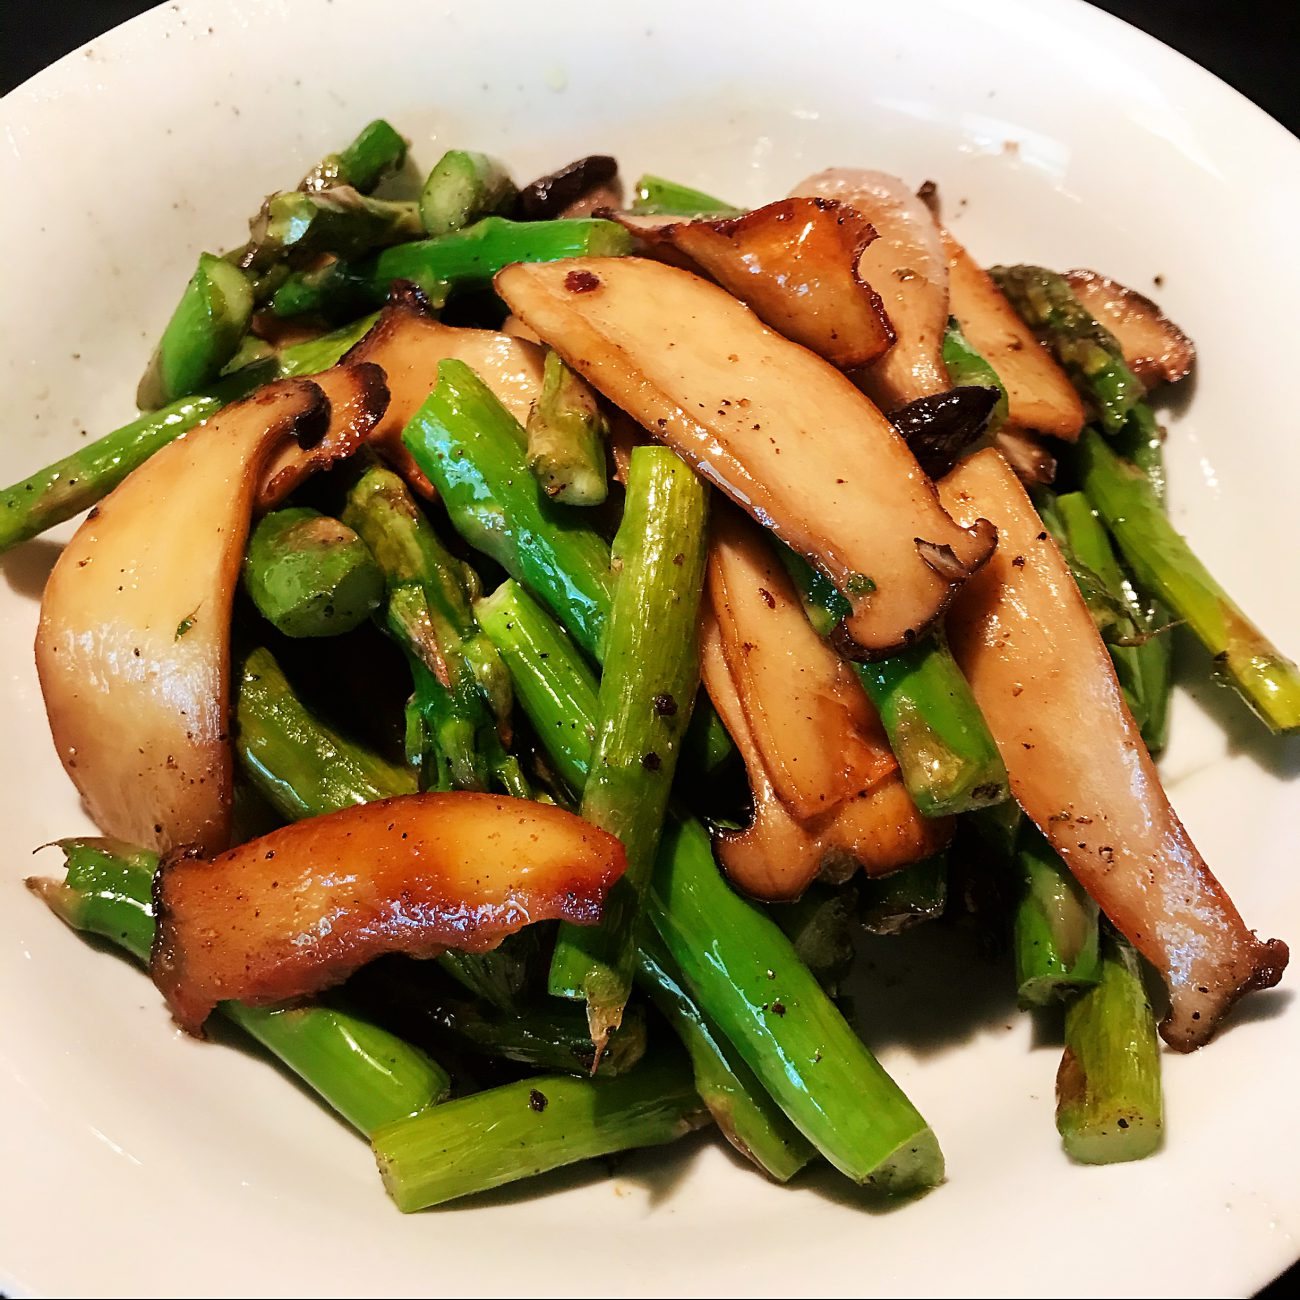 Grilled Asparagus and King Oyster Mushrooms